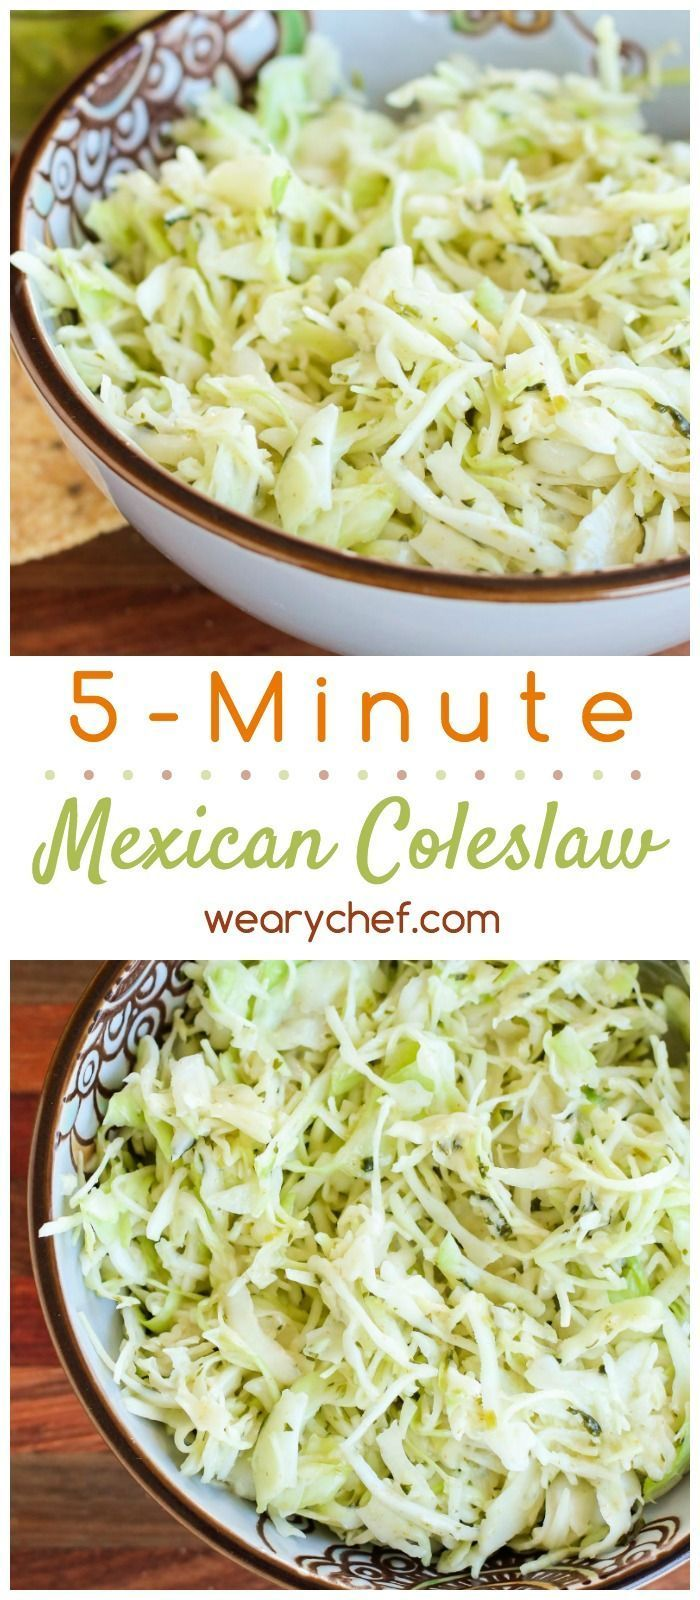 This easy Mexican coleslaw is a 5-minute side dish recipe